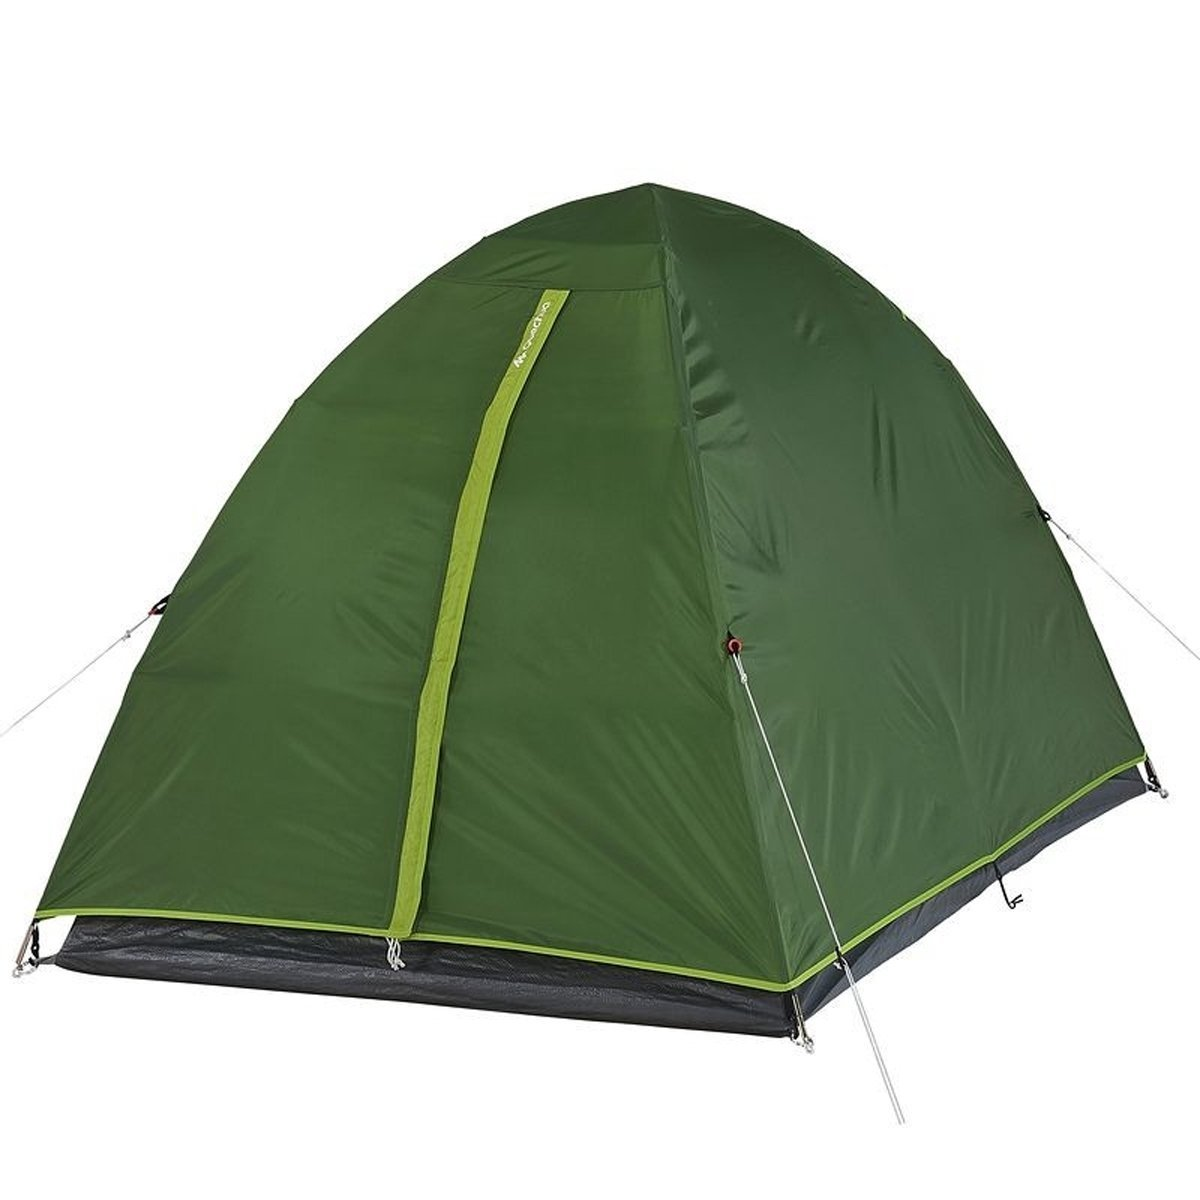 Camping Tent - 2 Person pic 3